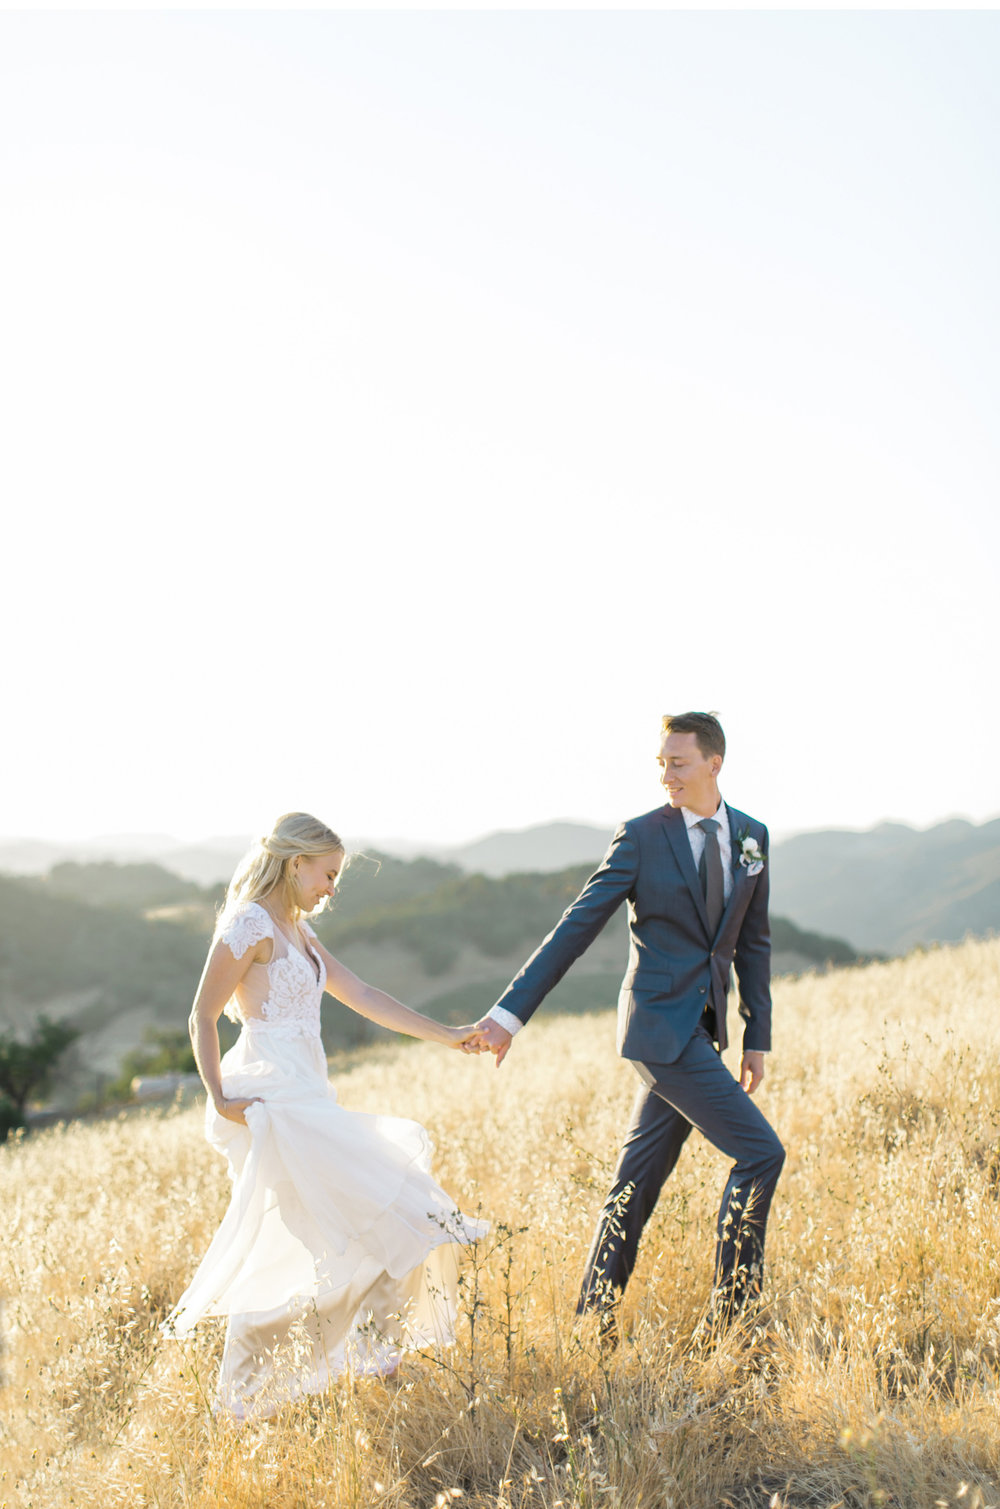 Natalie-Schutt-Photography's-Wedding-Style-Me-Pretty-Paso-Robles_05.jpg